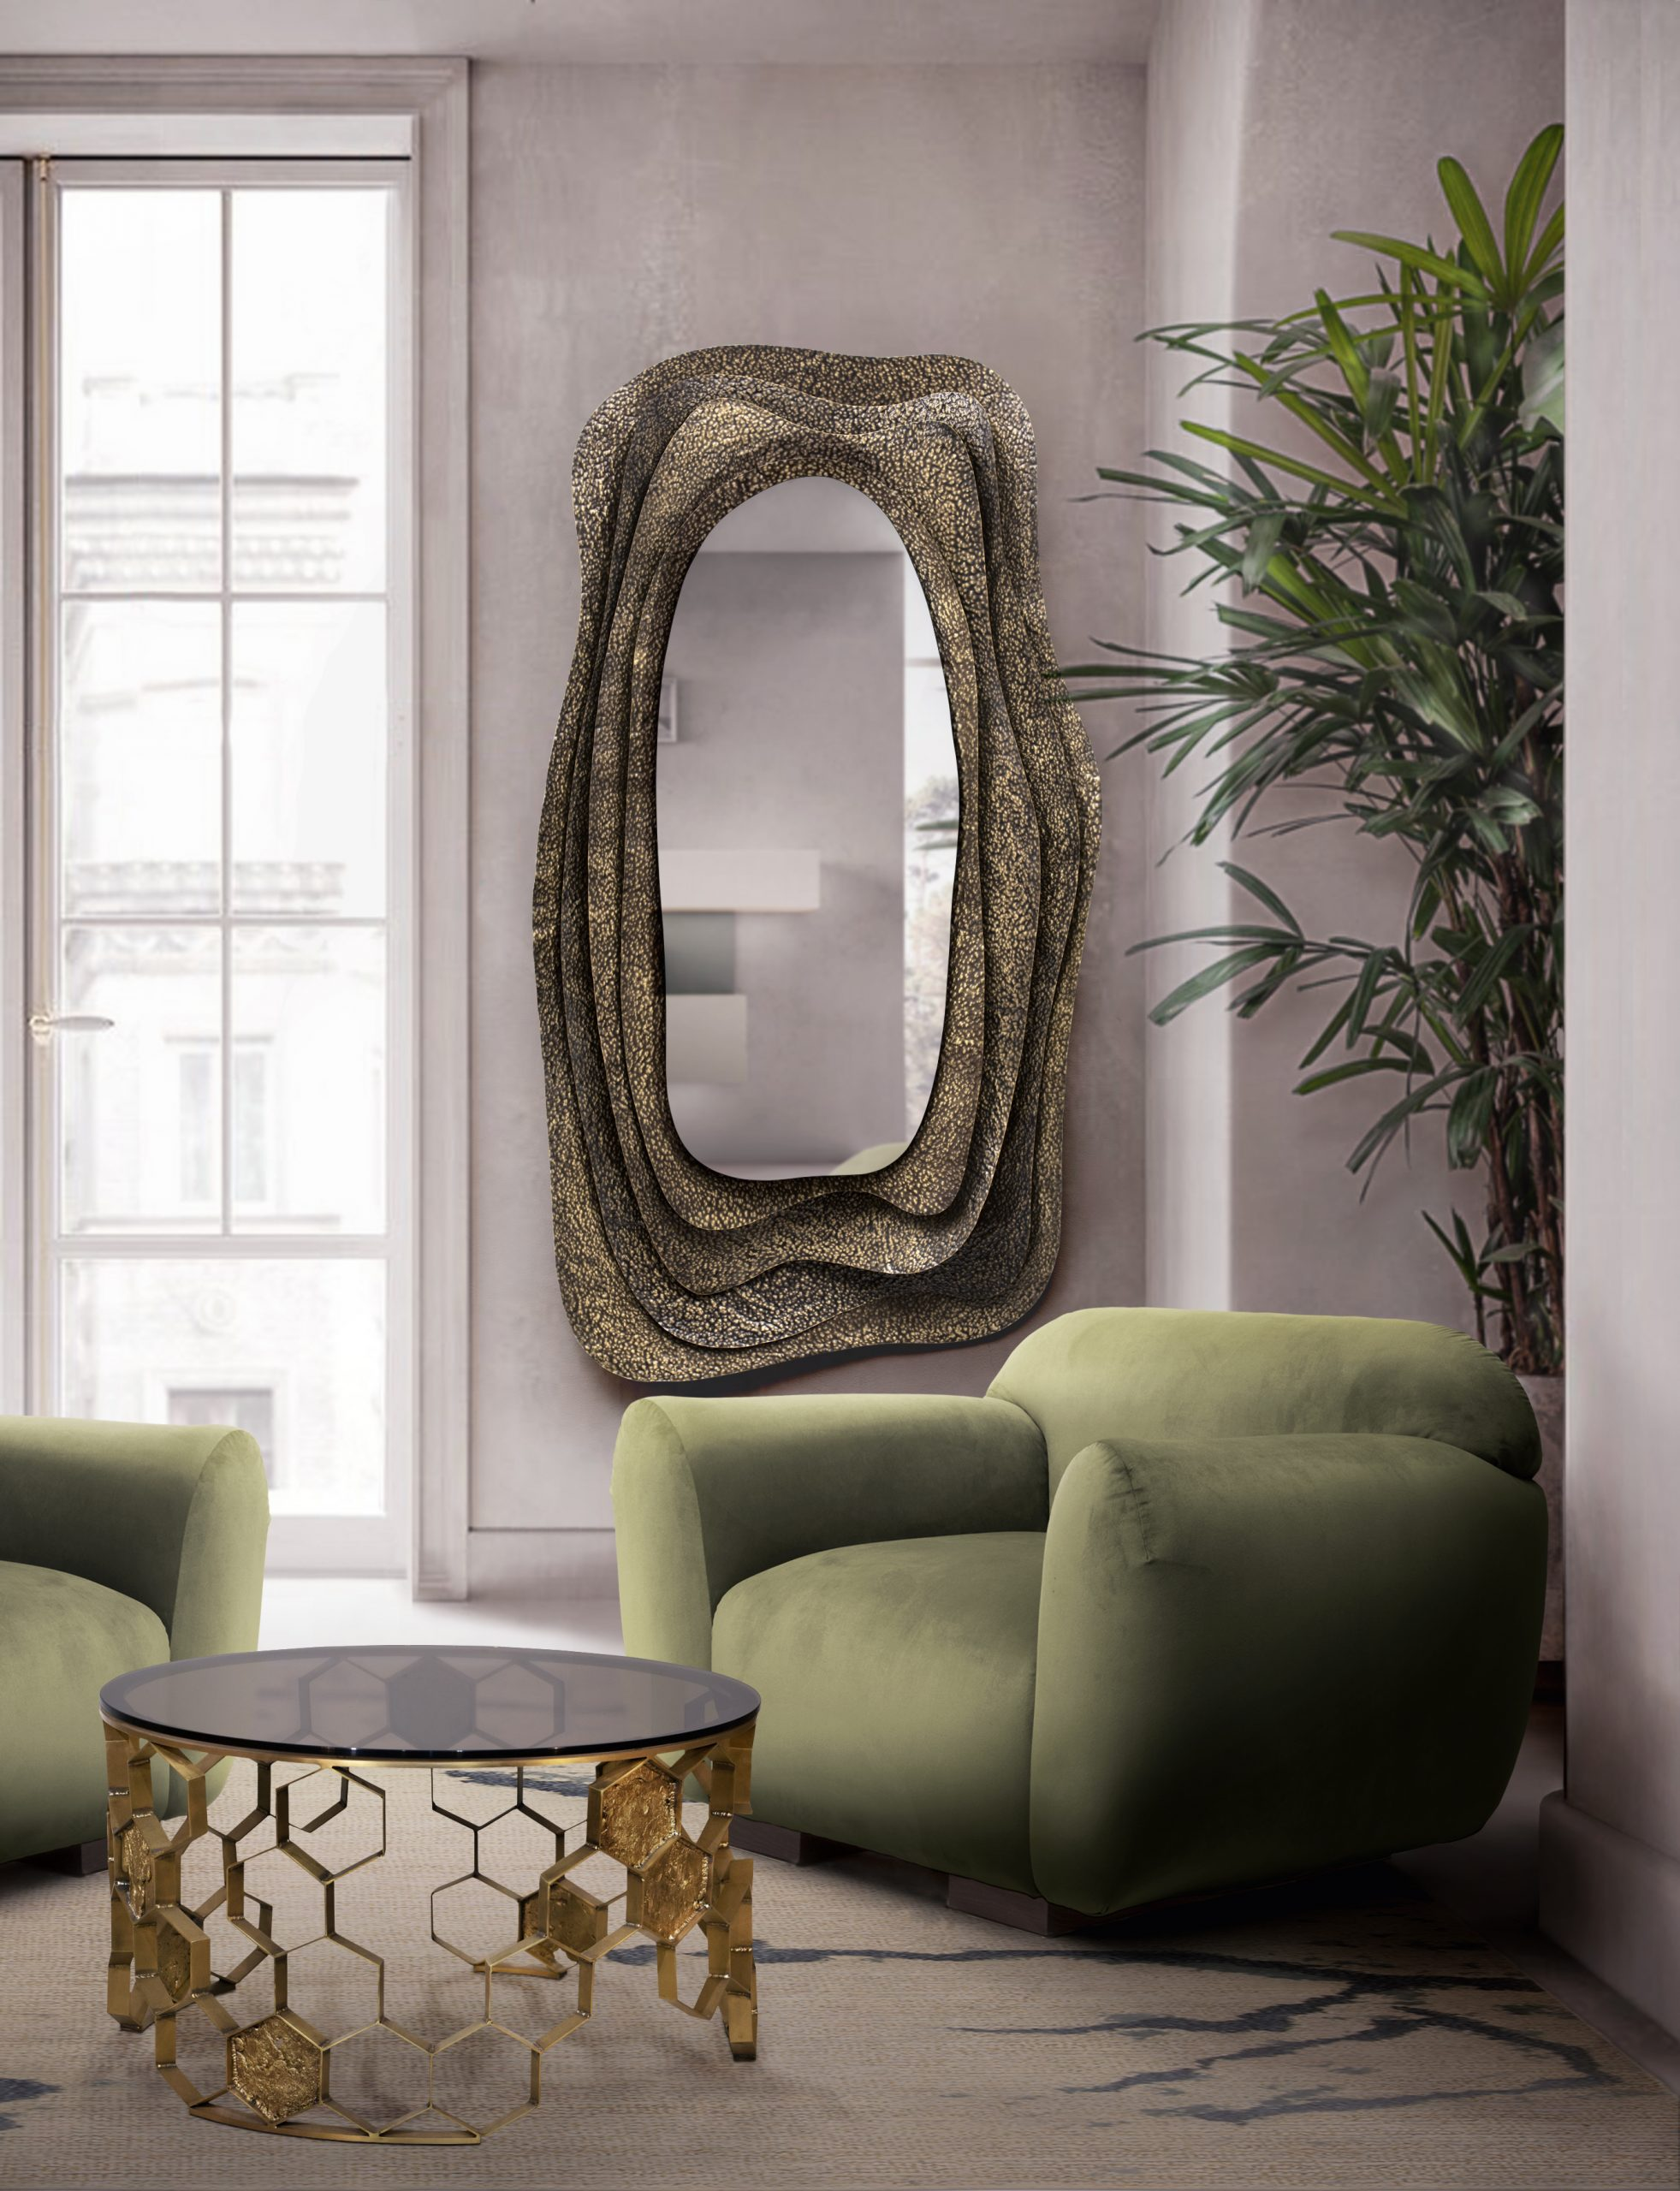 Spring Trends To Help You Choose The Best Sofa spring trends Spring Trends To Help You Choose The Best Sofa living otter single manuka center scaled